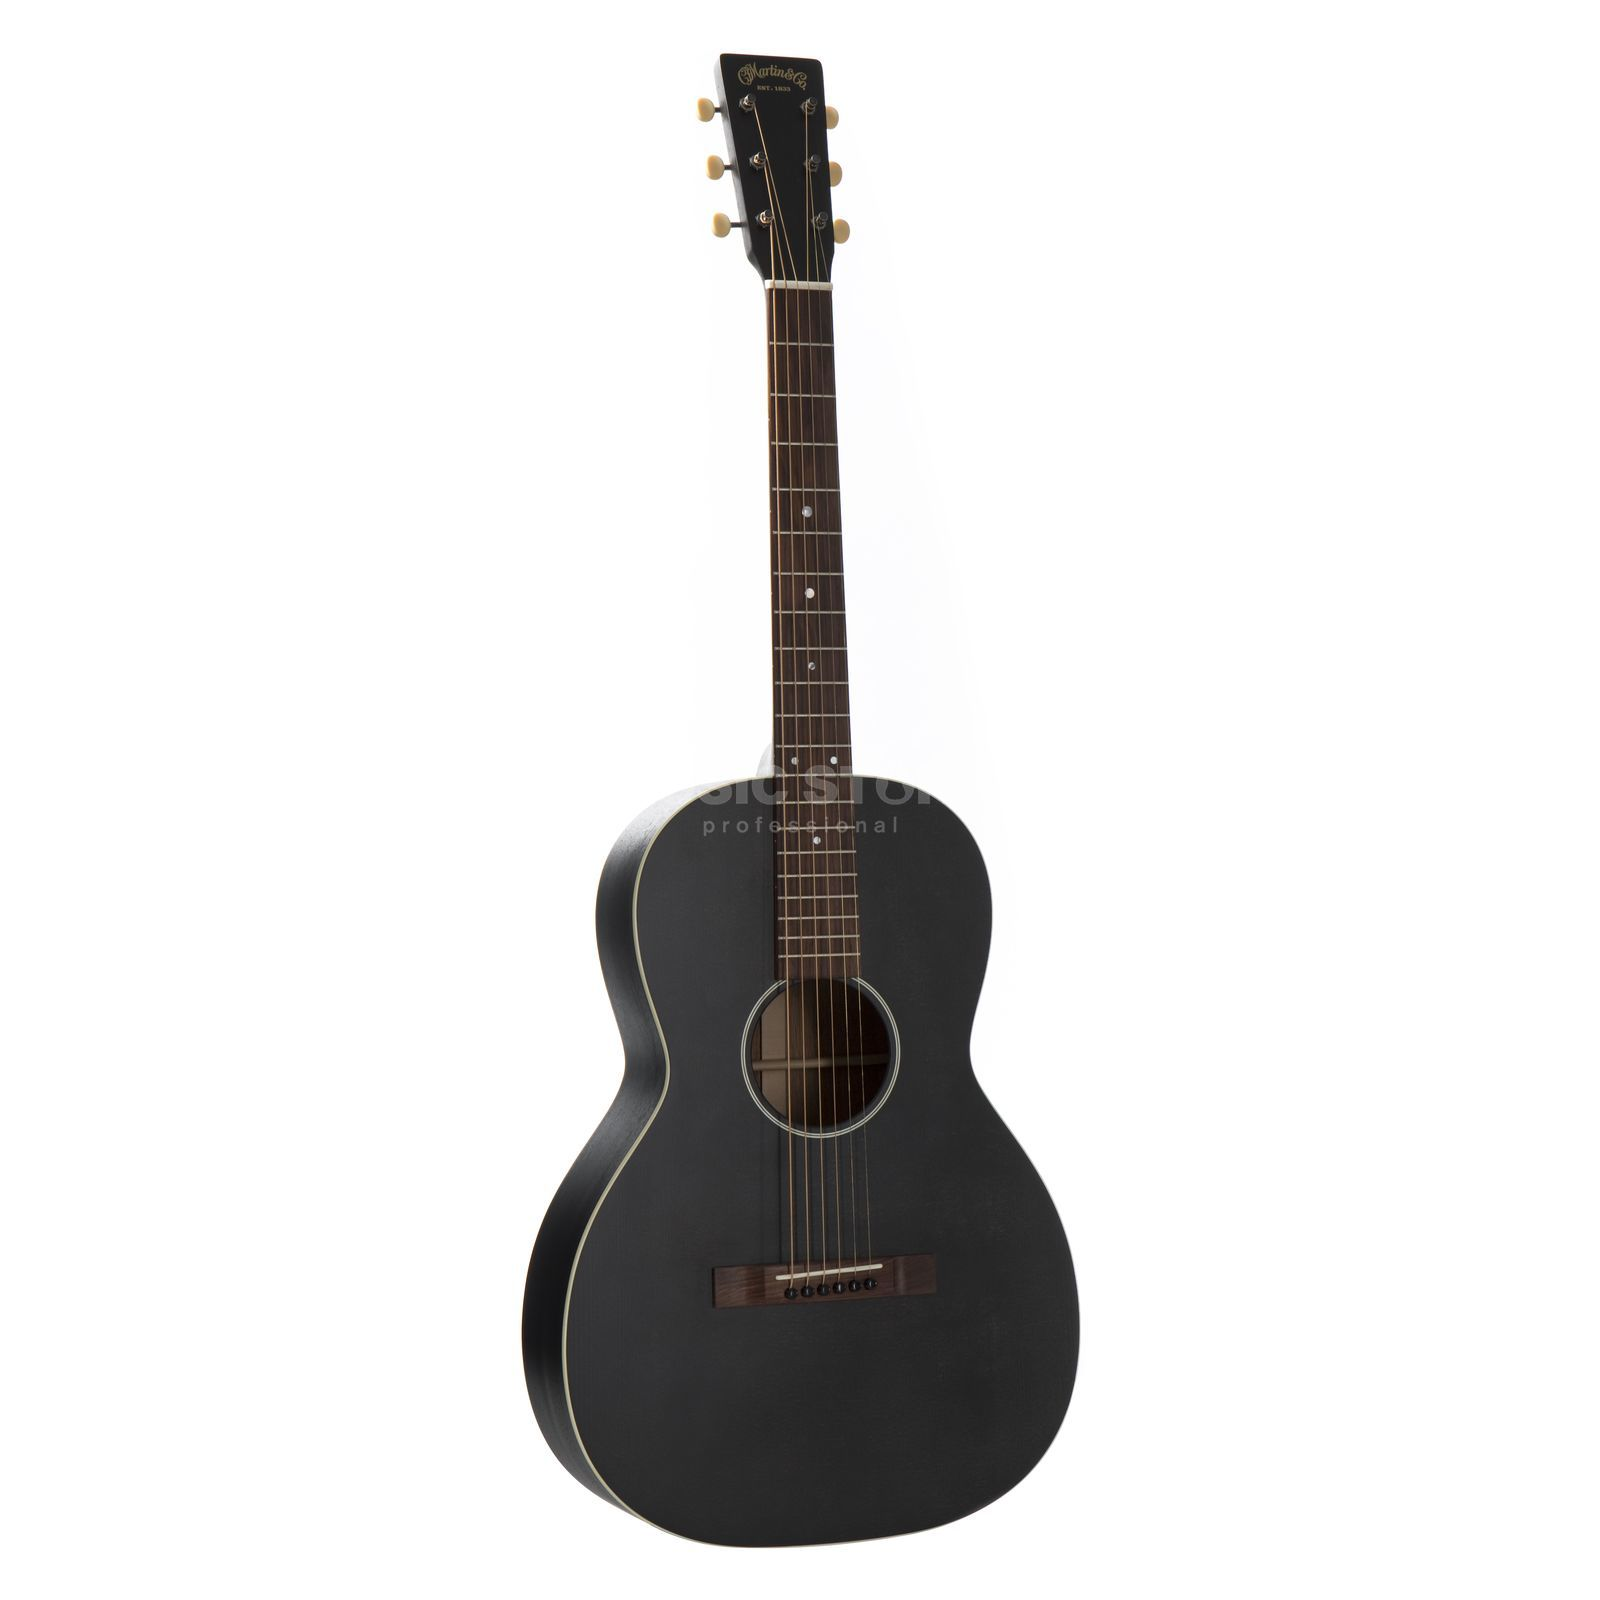 Martin Guitars 00-17S Black Smoke Produktbild